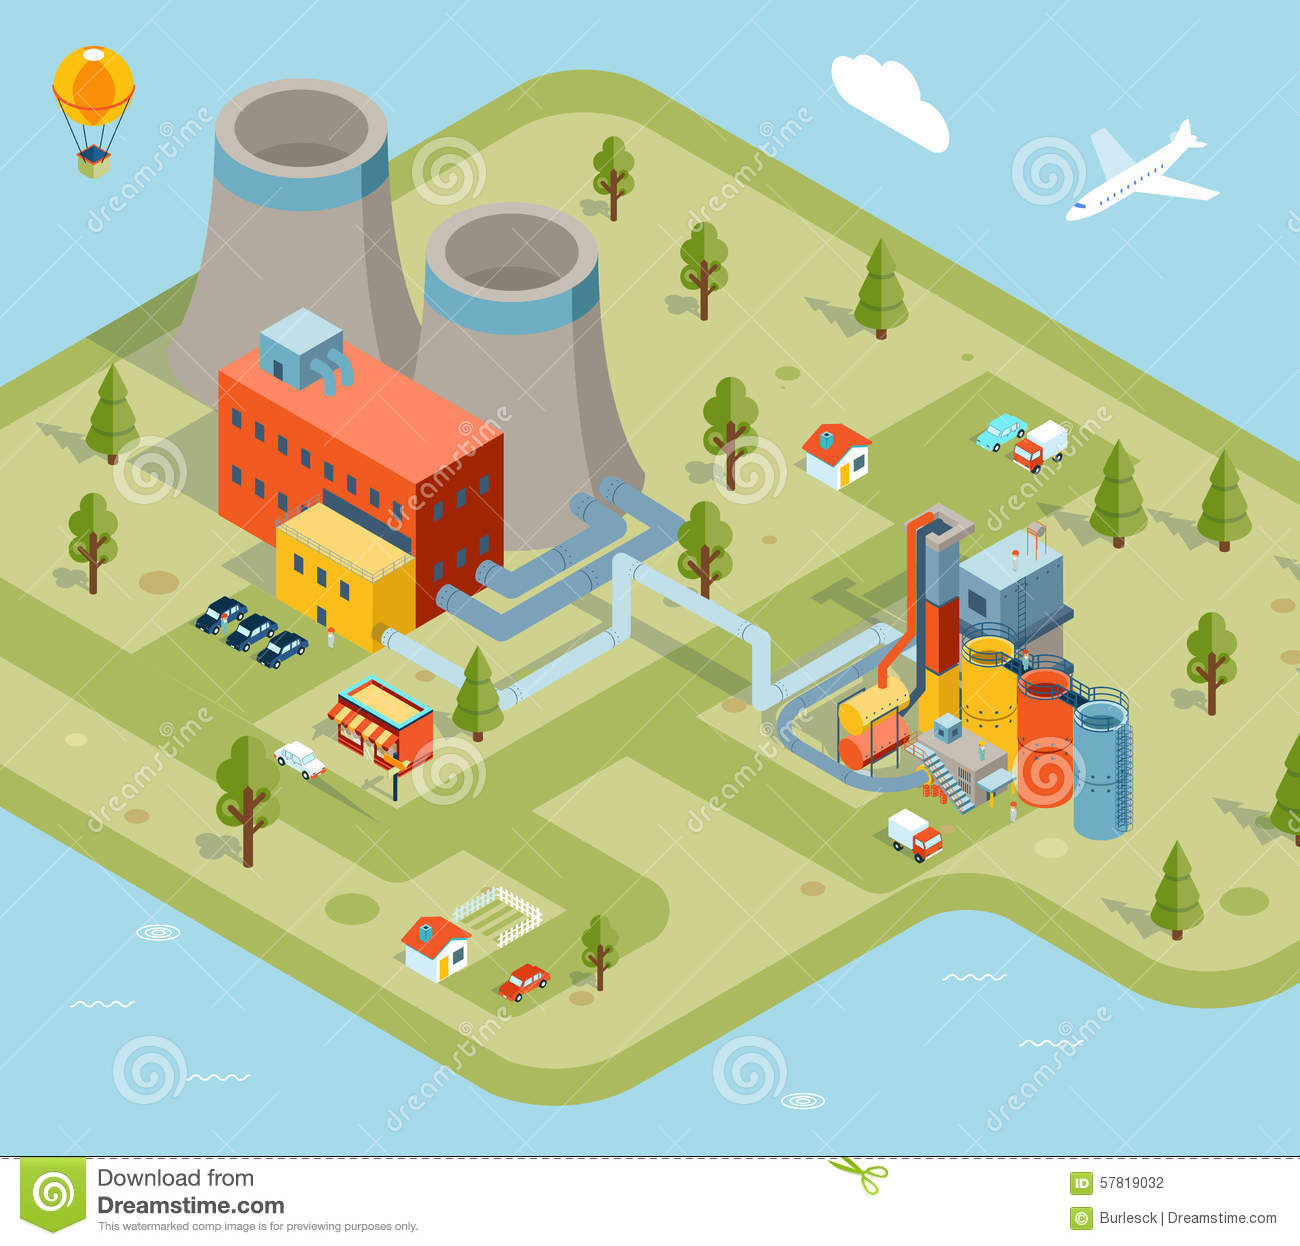 Picture Book Illustration Making An Architectural Model: Vector Flat 3d Isometric Factory Stock Vector